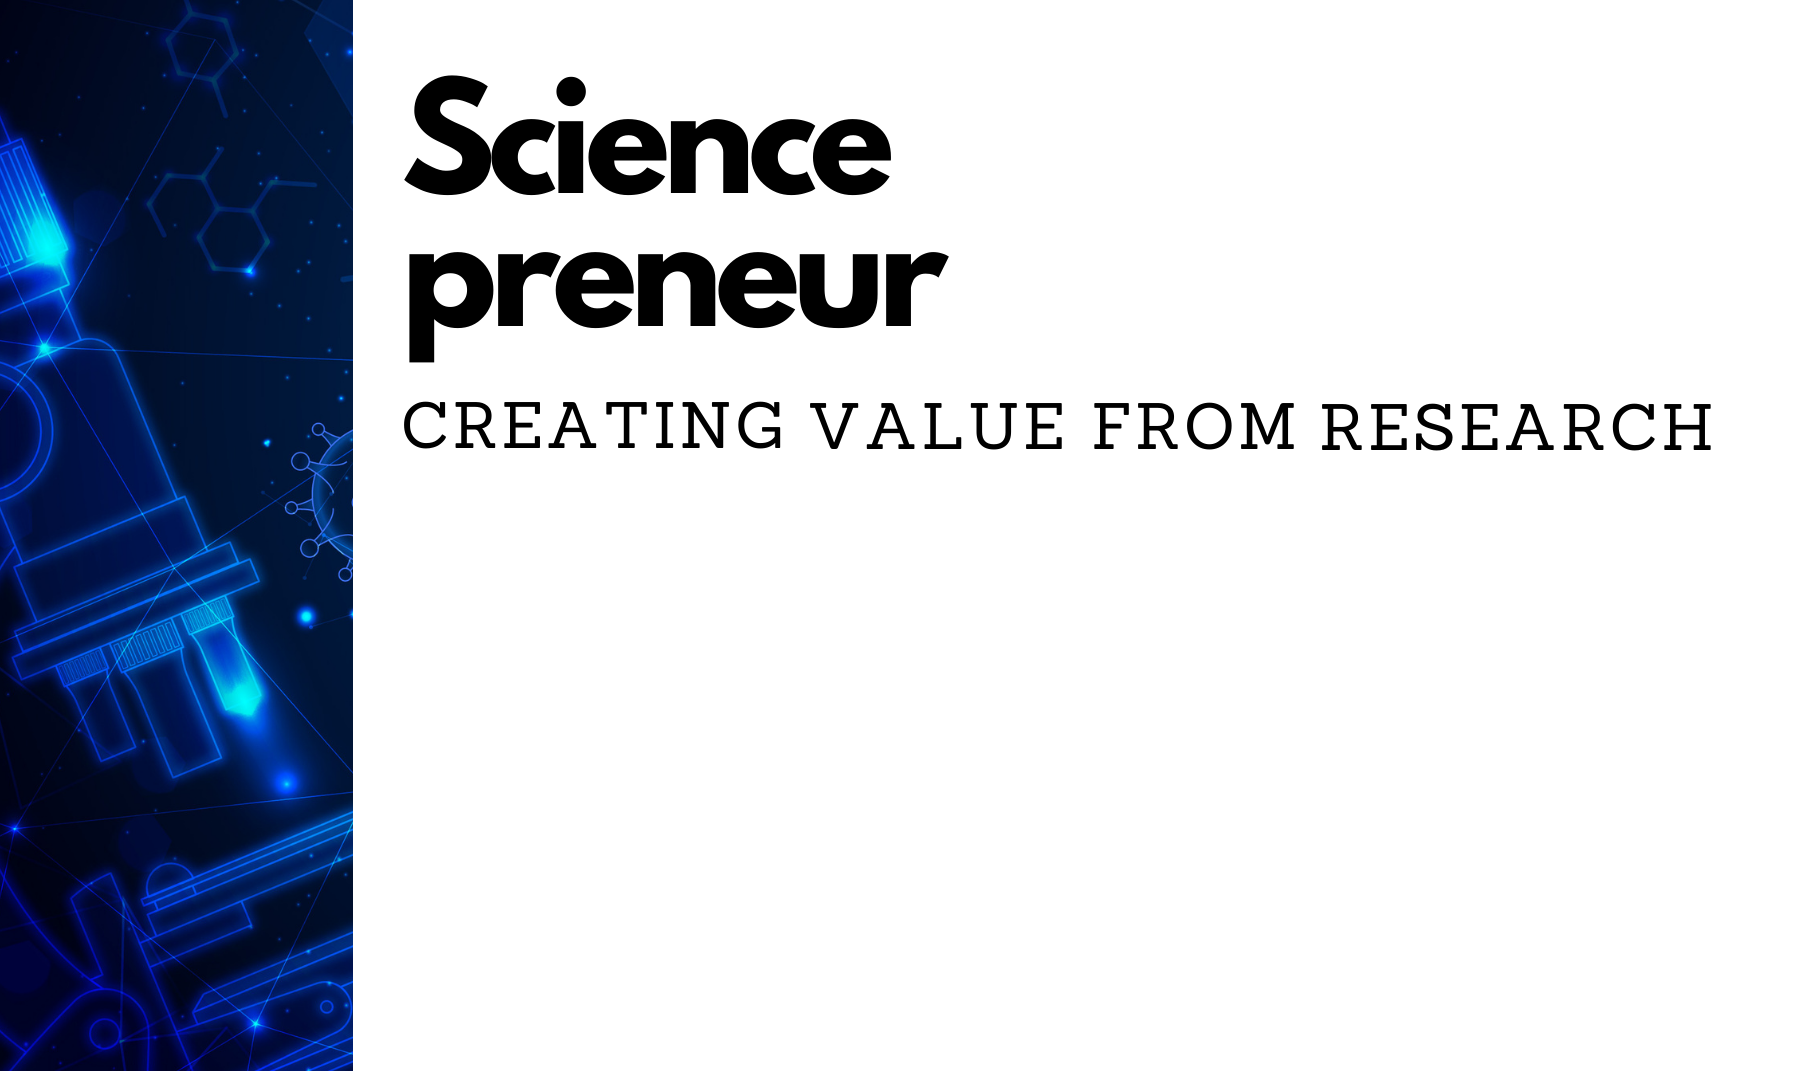 Sciencepreneur - creating value through research